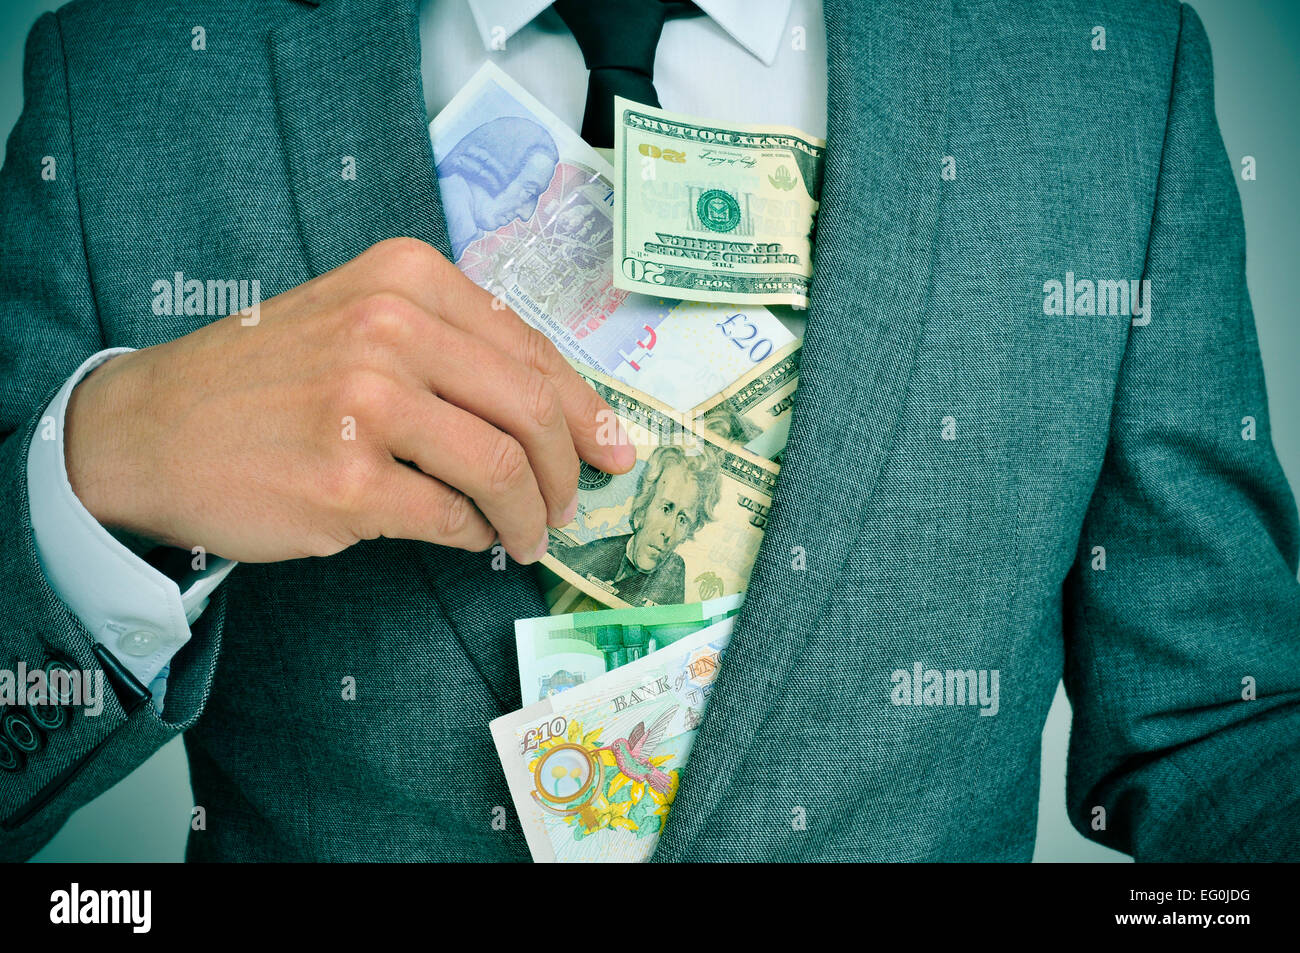 man in suit putting euro, dollar and pound bills in his jacket, depicting concepts such as greediness, corruption - Stock Image